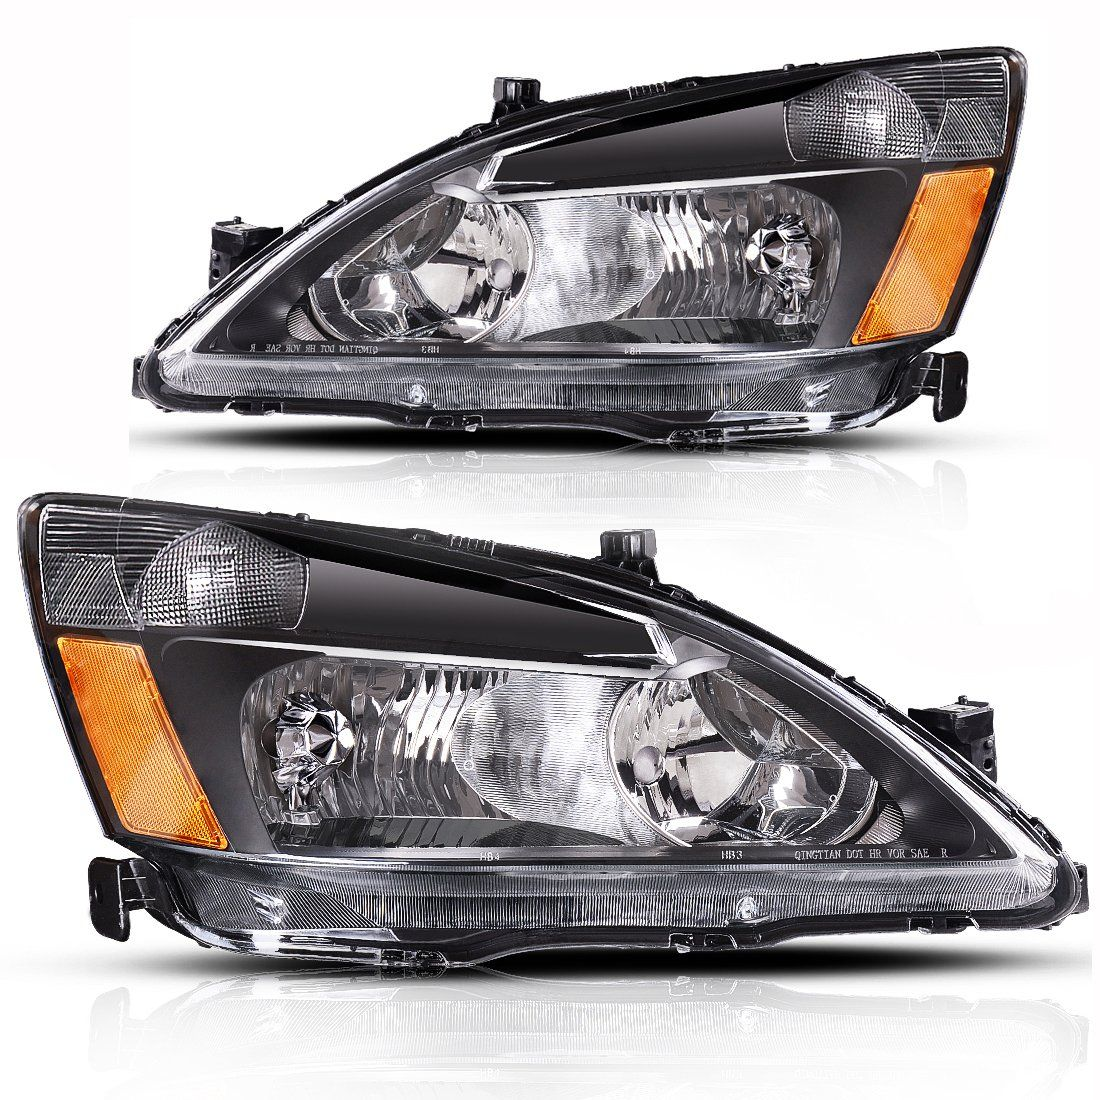 Autosaver88 For 2003 2004 2005 2006 2007 Honda Accord Headlight Assembly Oe Headlamp Replacement Amber Reflector Black Ho Honda Accord Headlight Assembly Honda